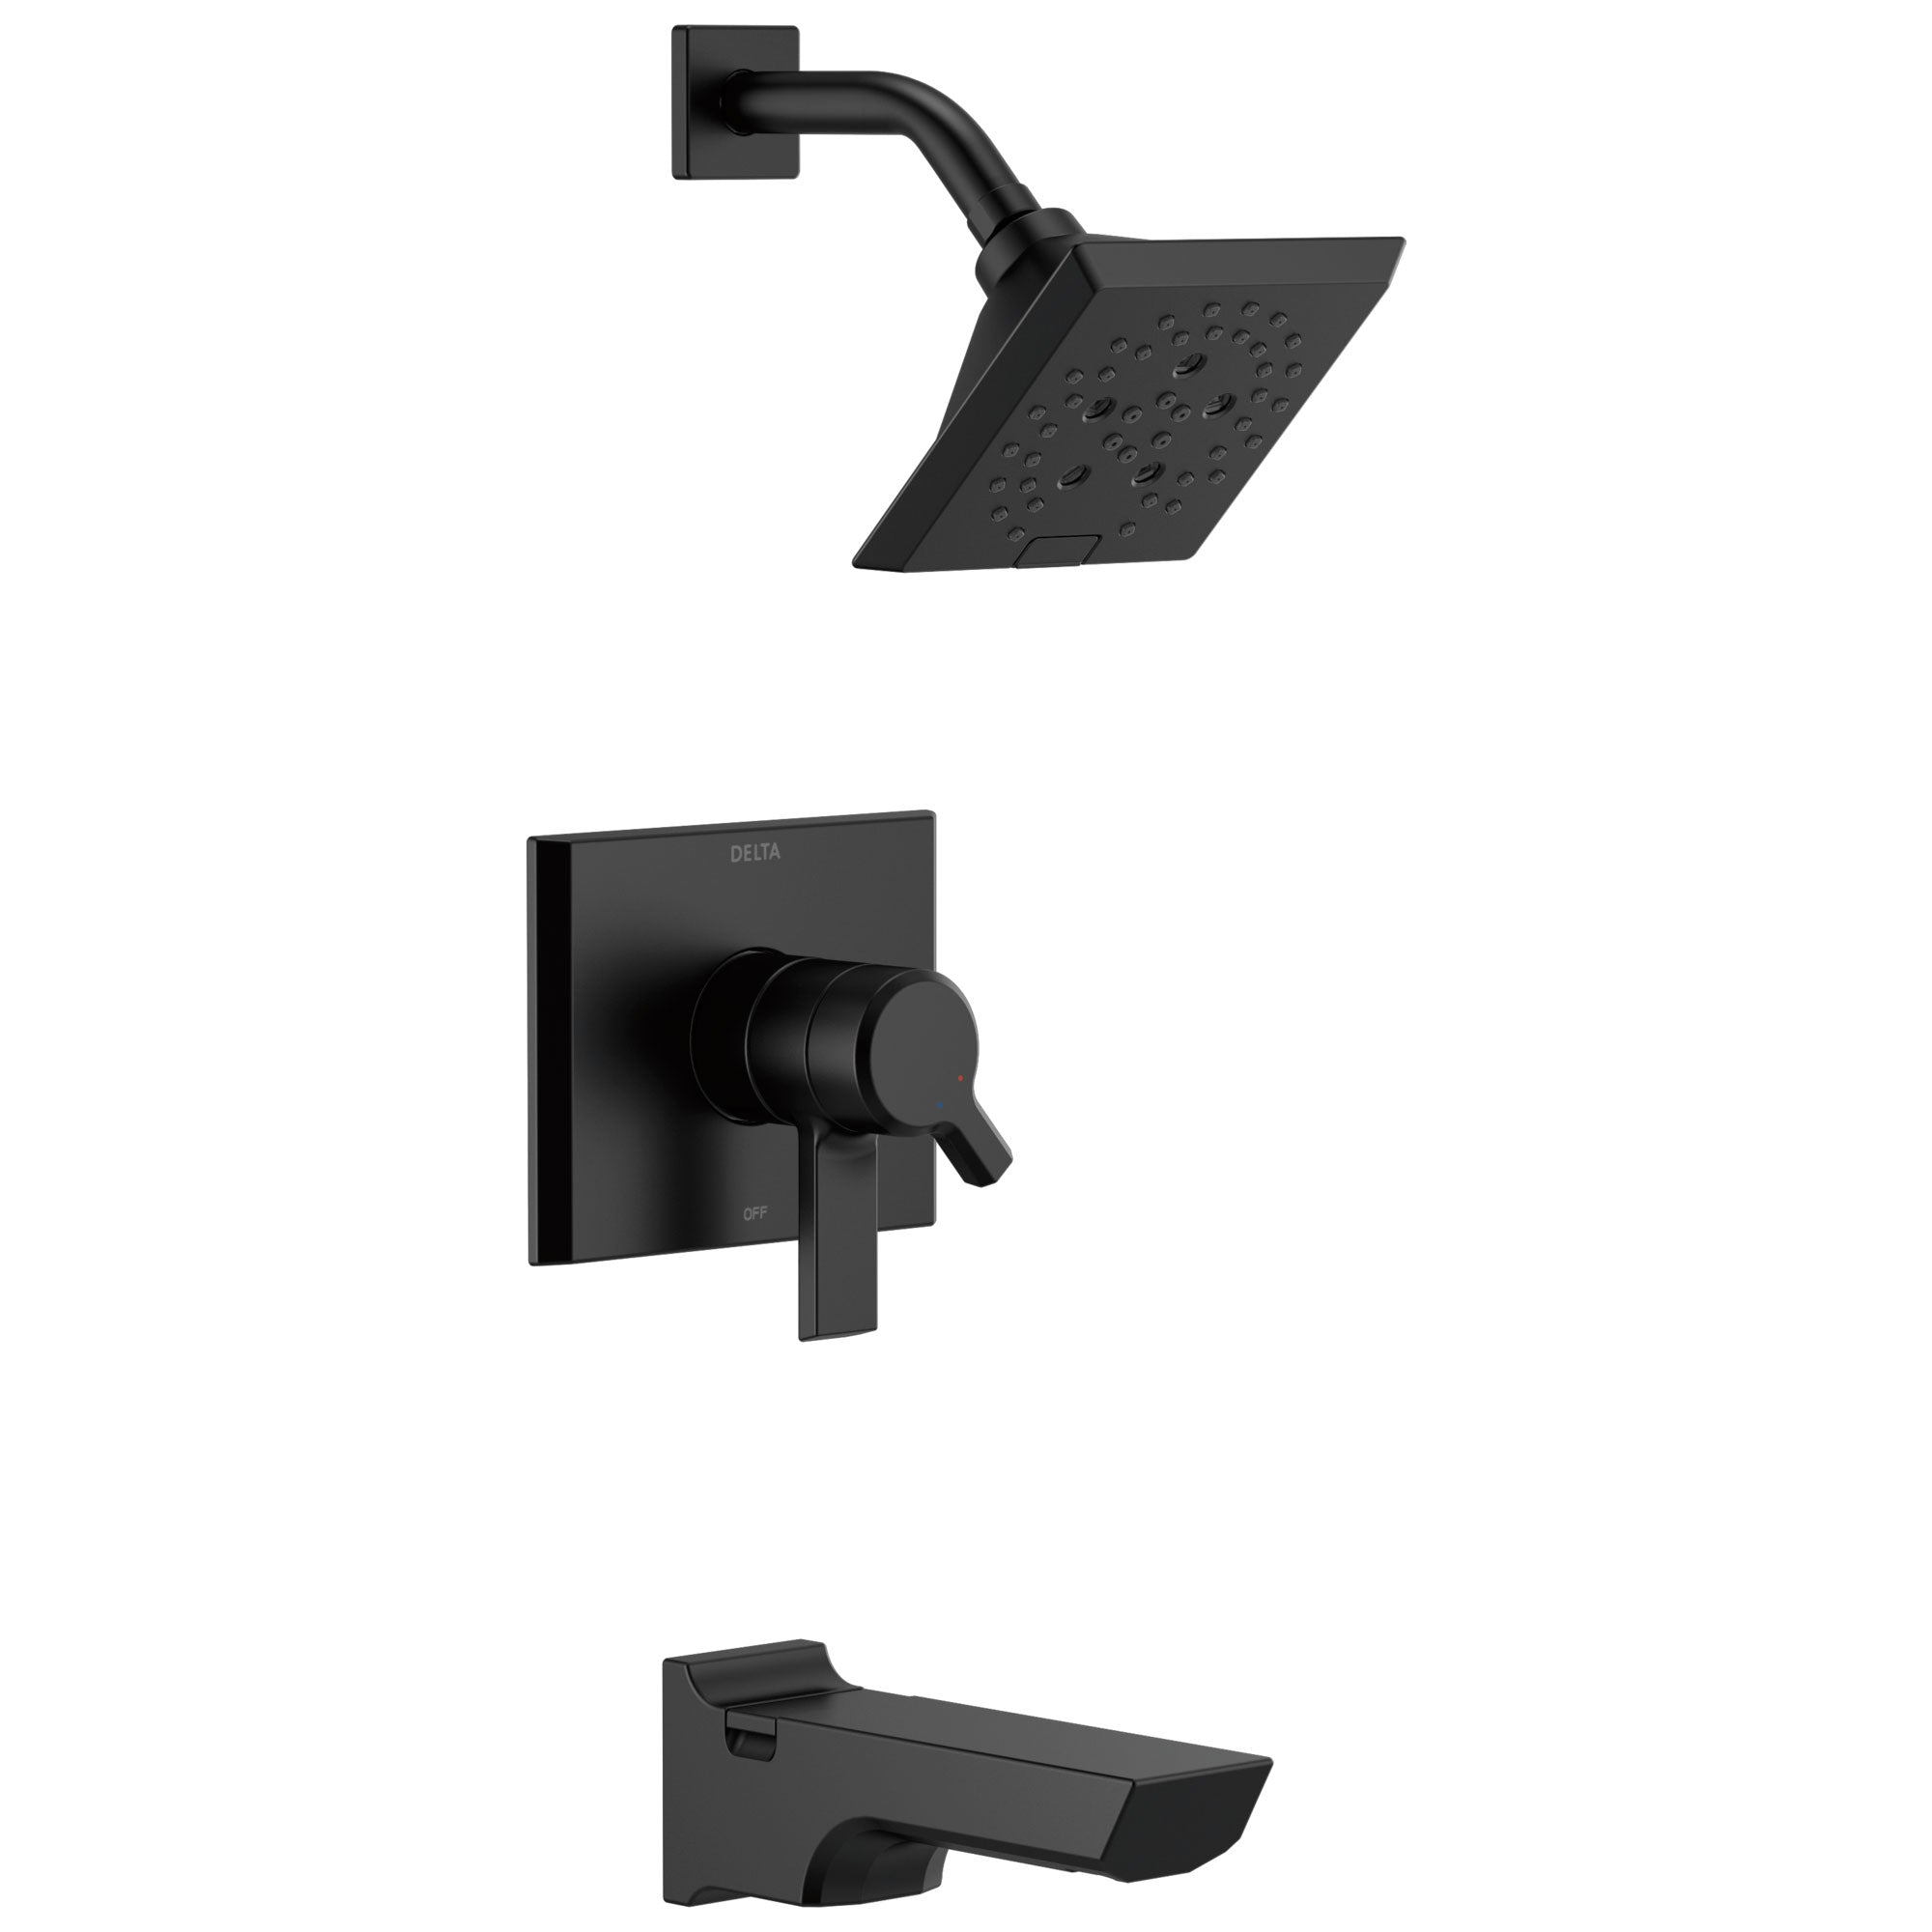 Delta Pivotal Matte Black Finish H2Okinetic Tub and Shower Combination Faucet Includes 17 Series Cartridge, Handles, and Valve without Stops D3325V